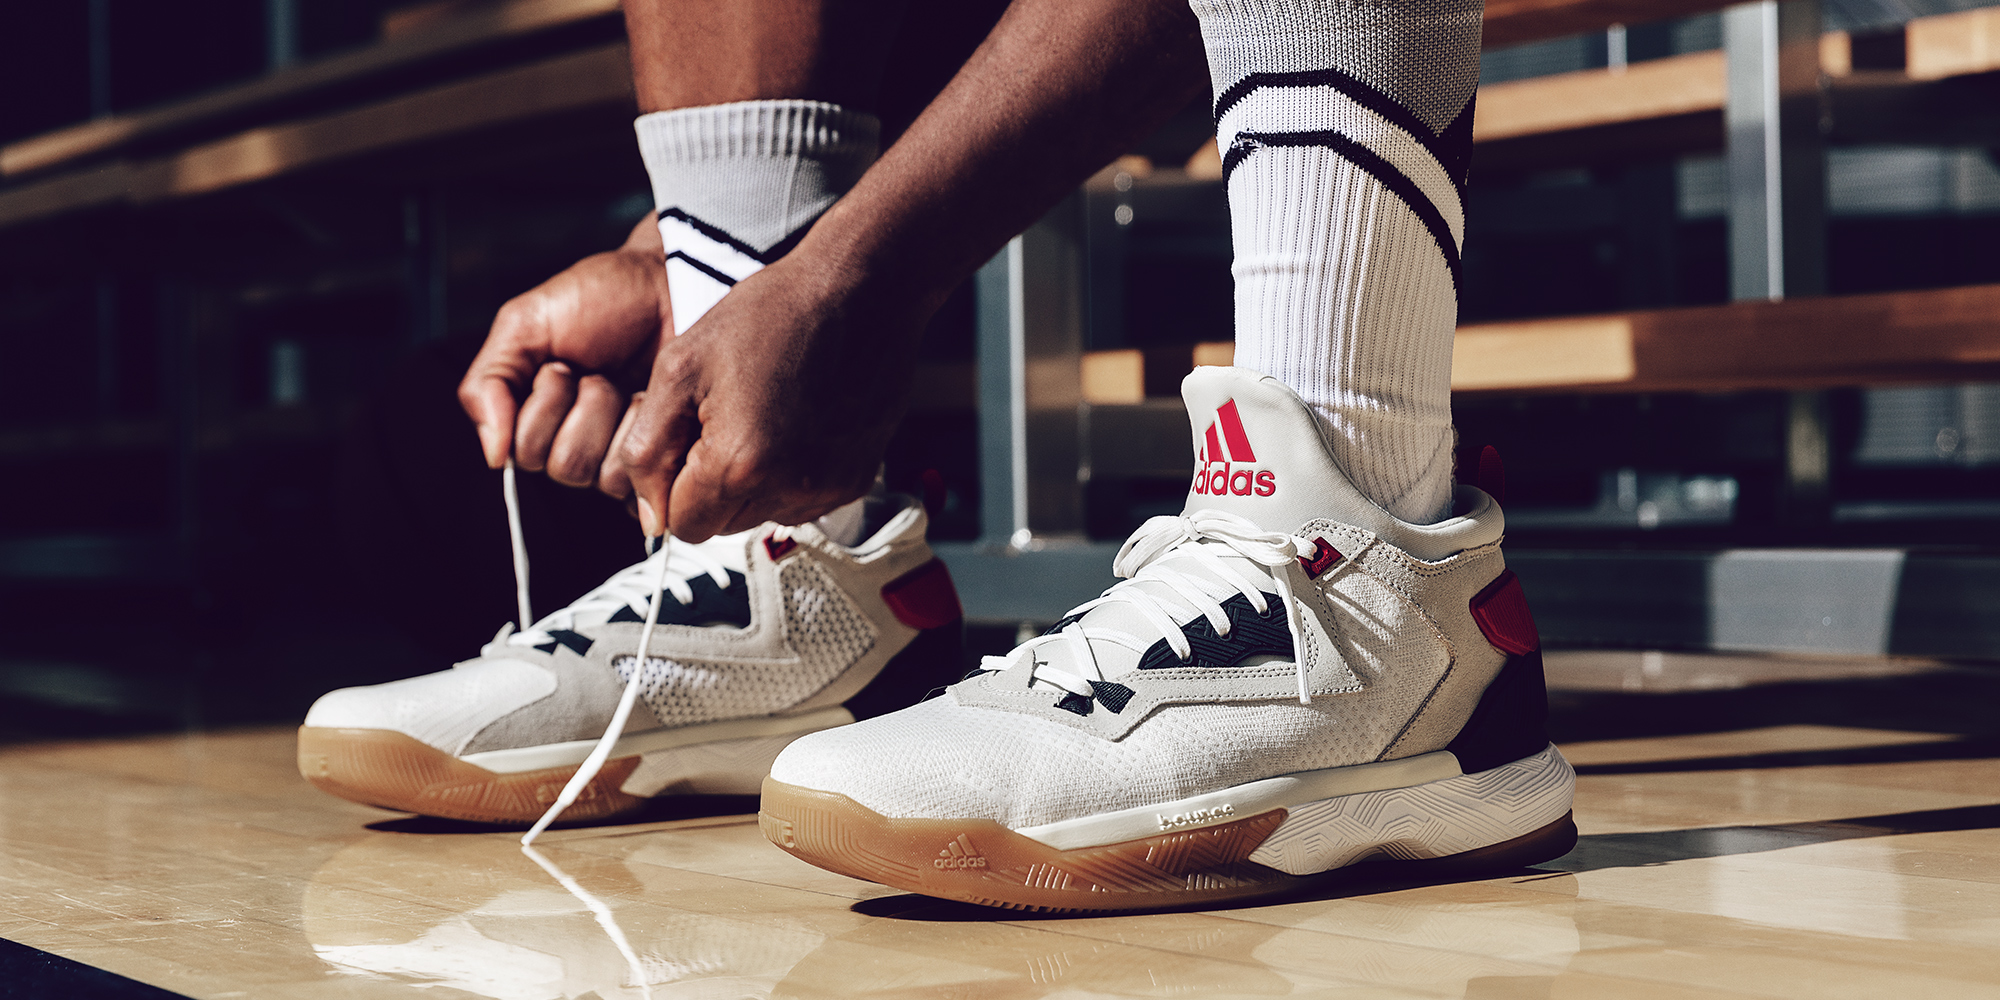 d6b8e51c44931 The adidas D Lillard 2 'Rip City' Colorway is Available Now ...